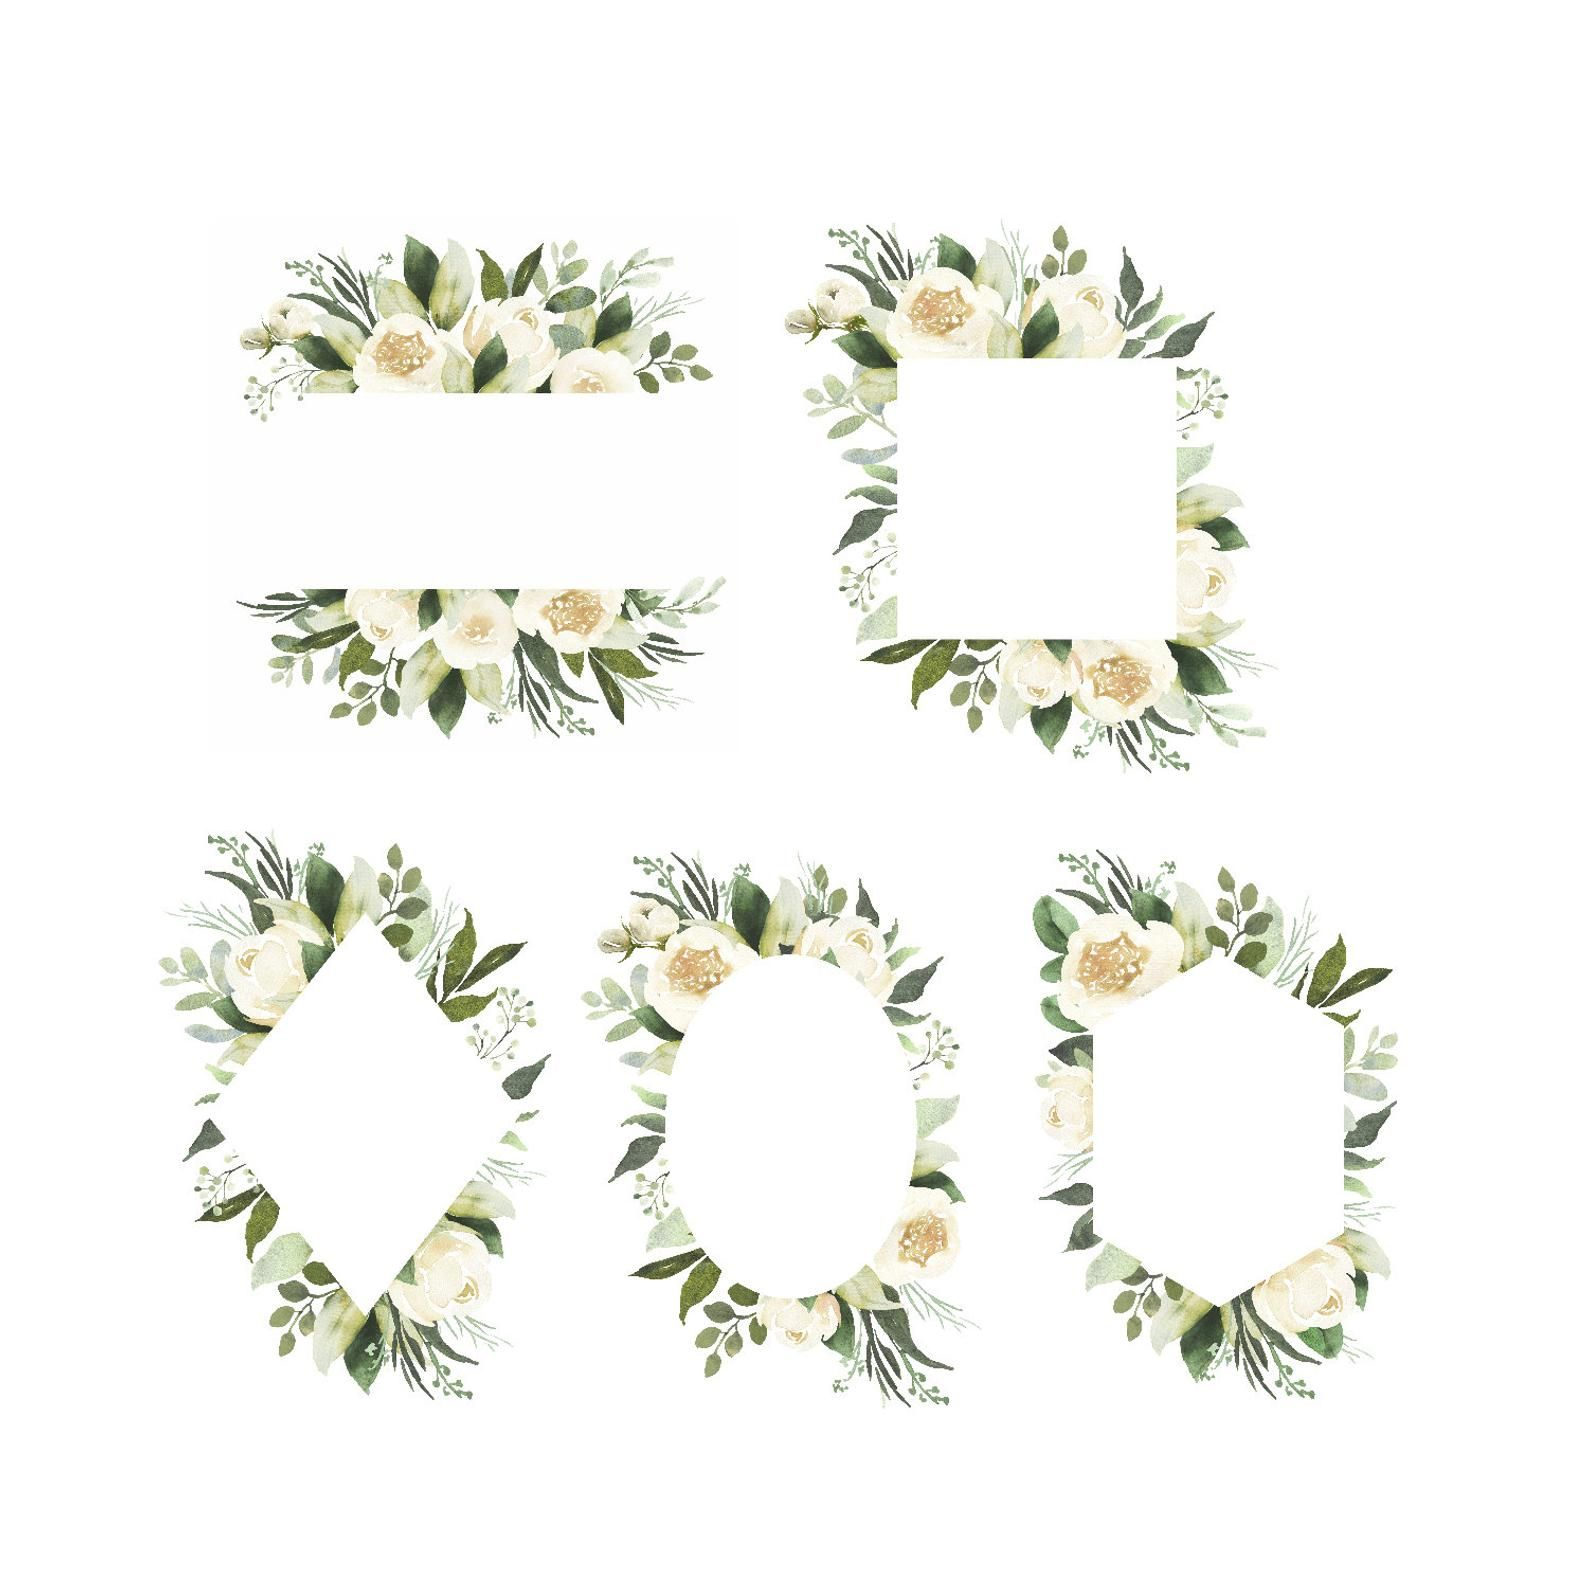 Adelaide watercolor clipart with white roses and eucalyptus.